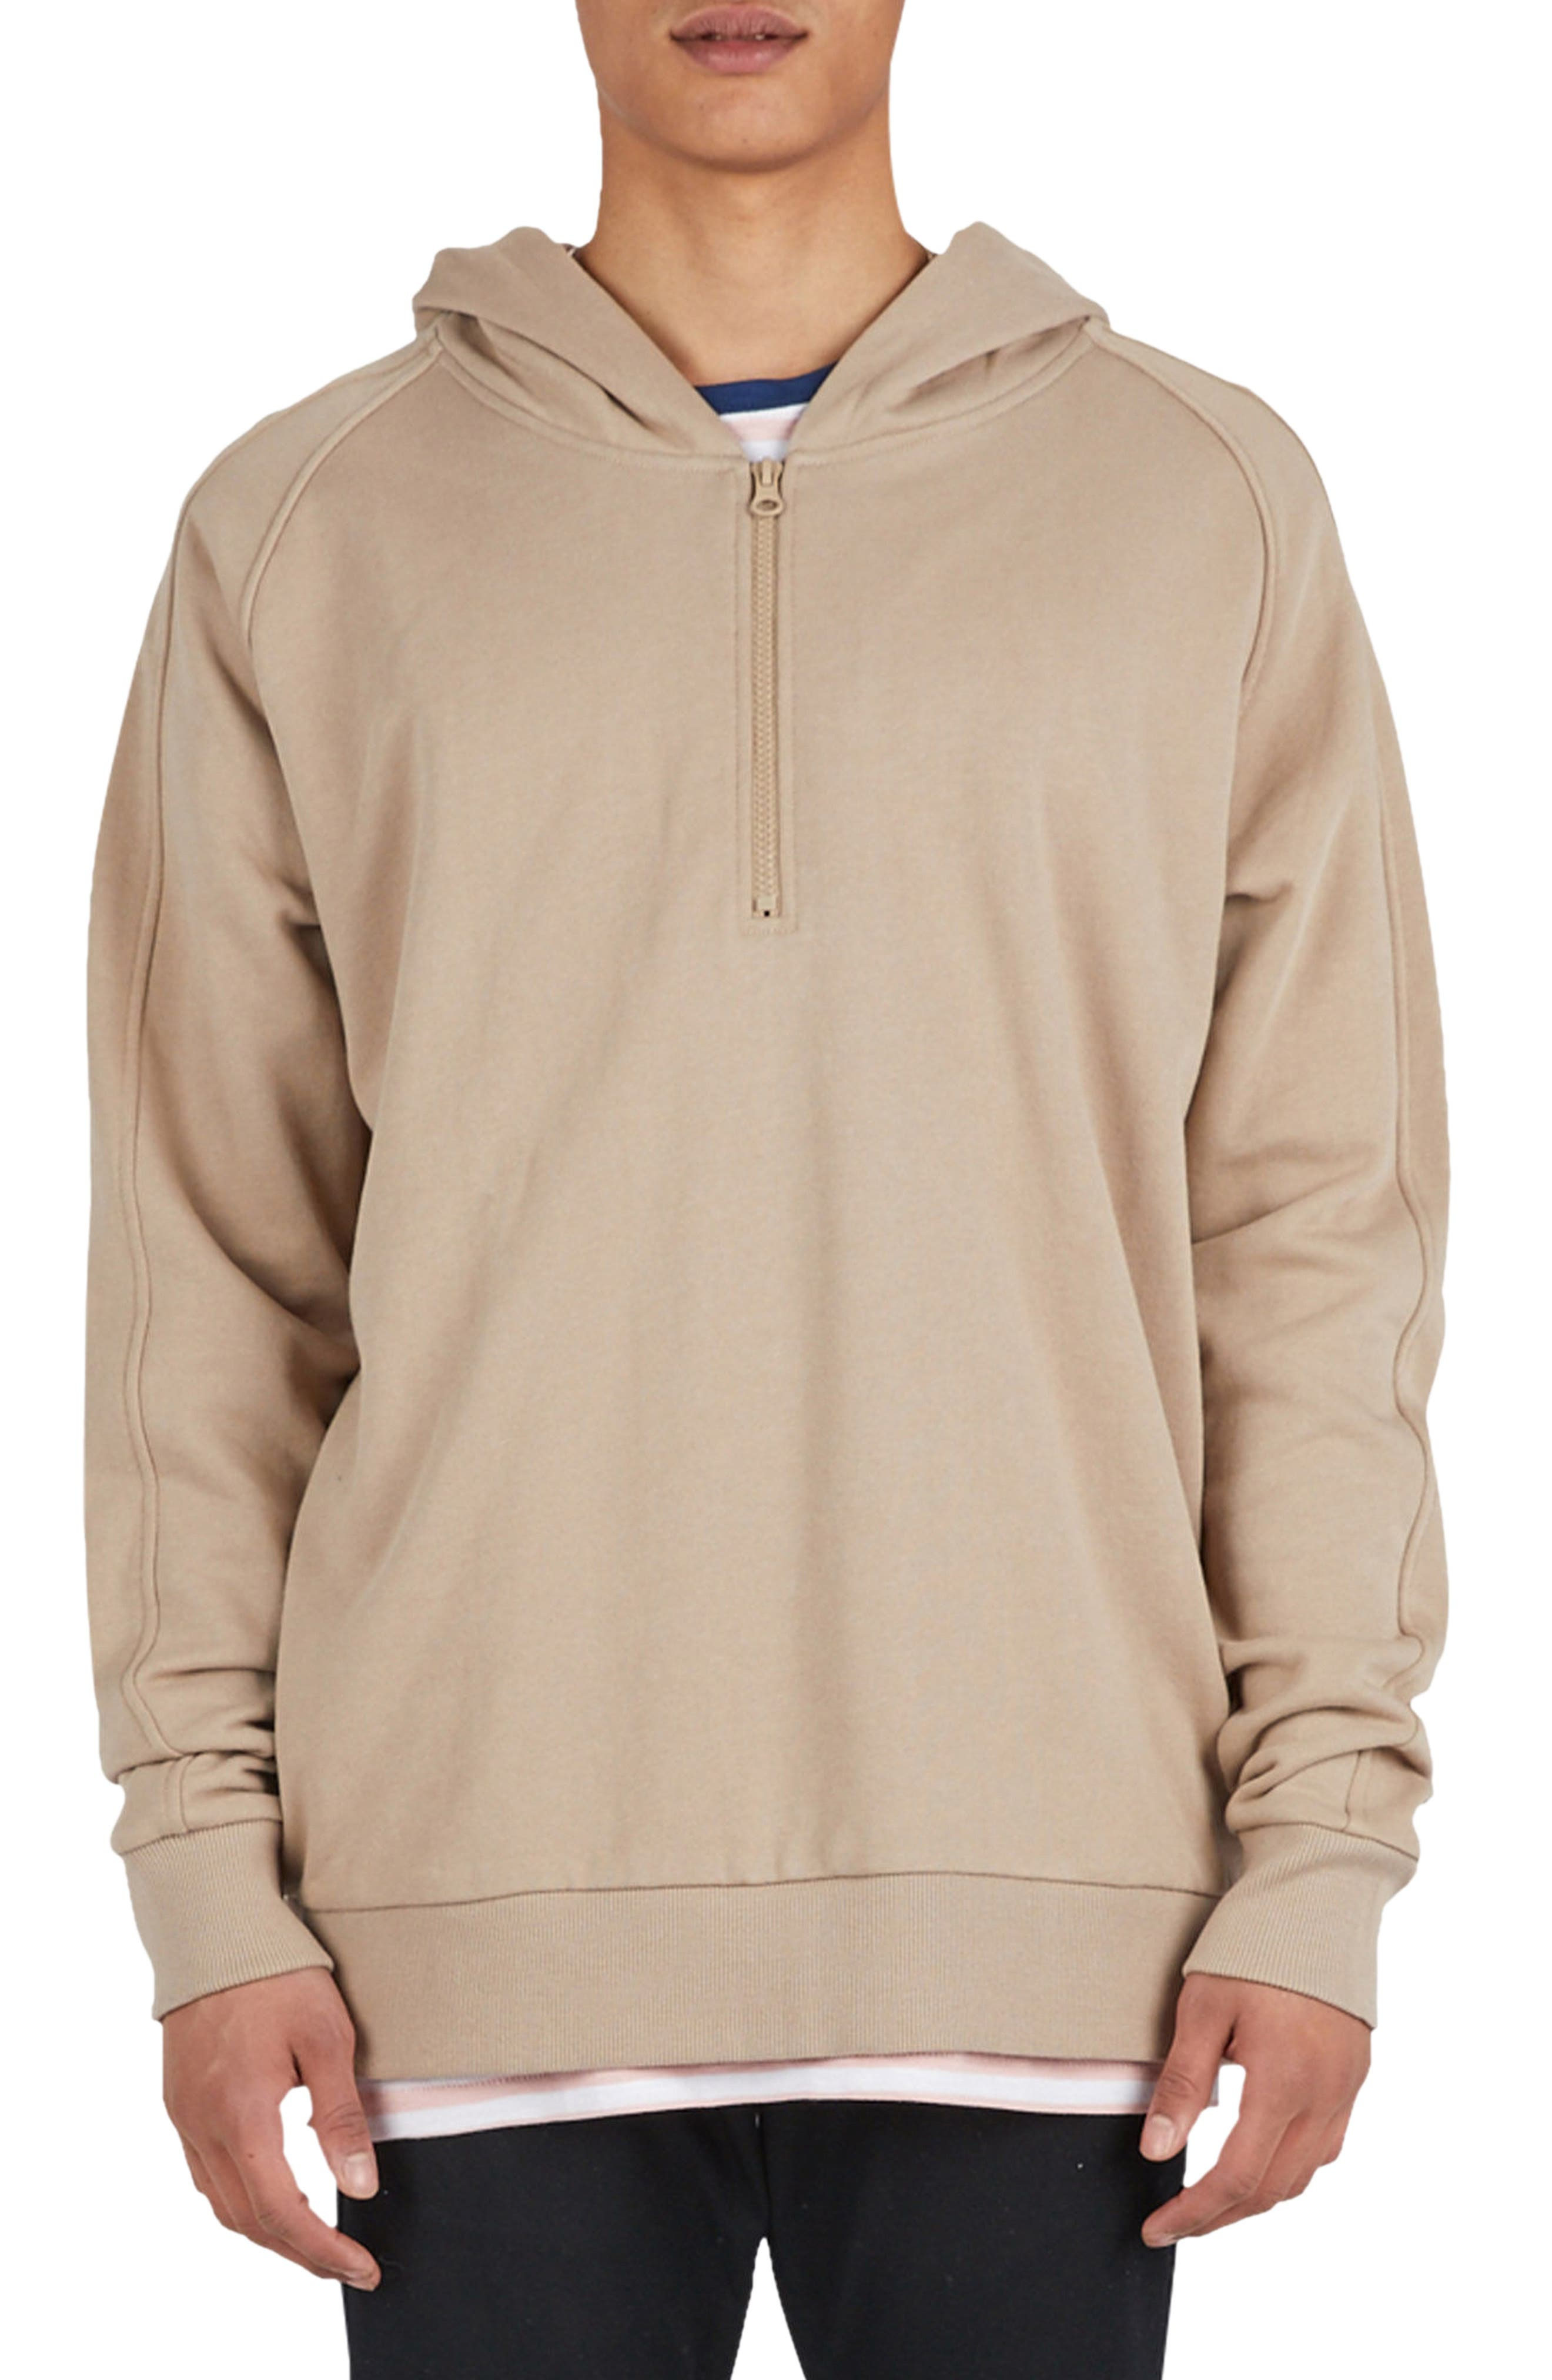 Olympic Zip Pullover Hoodie,                             Main thumbnail 1, color,                             Beige